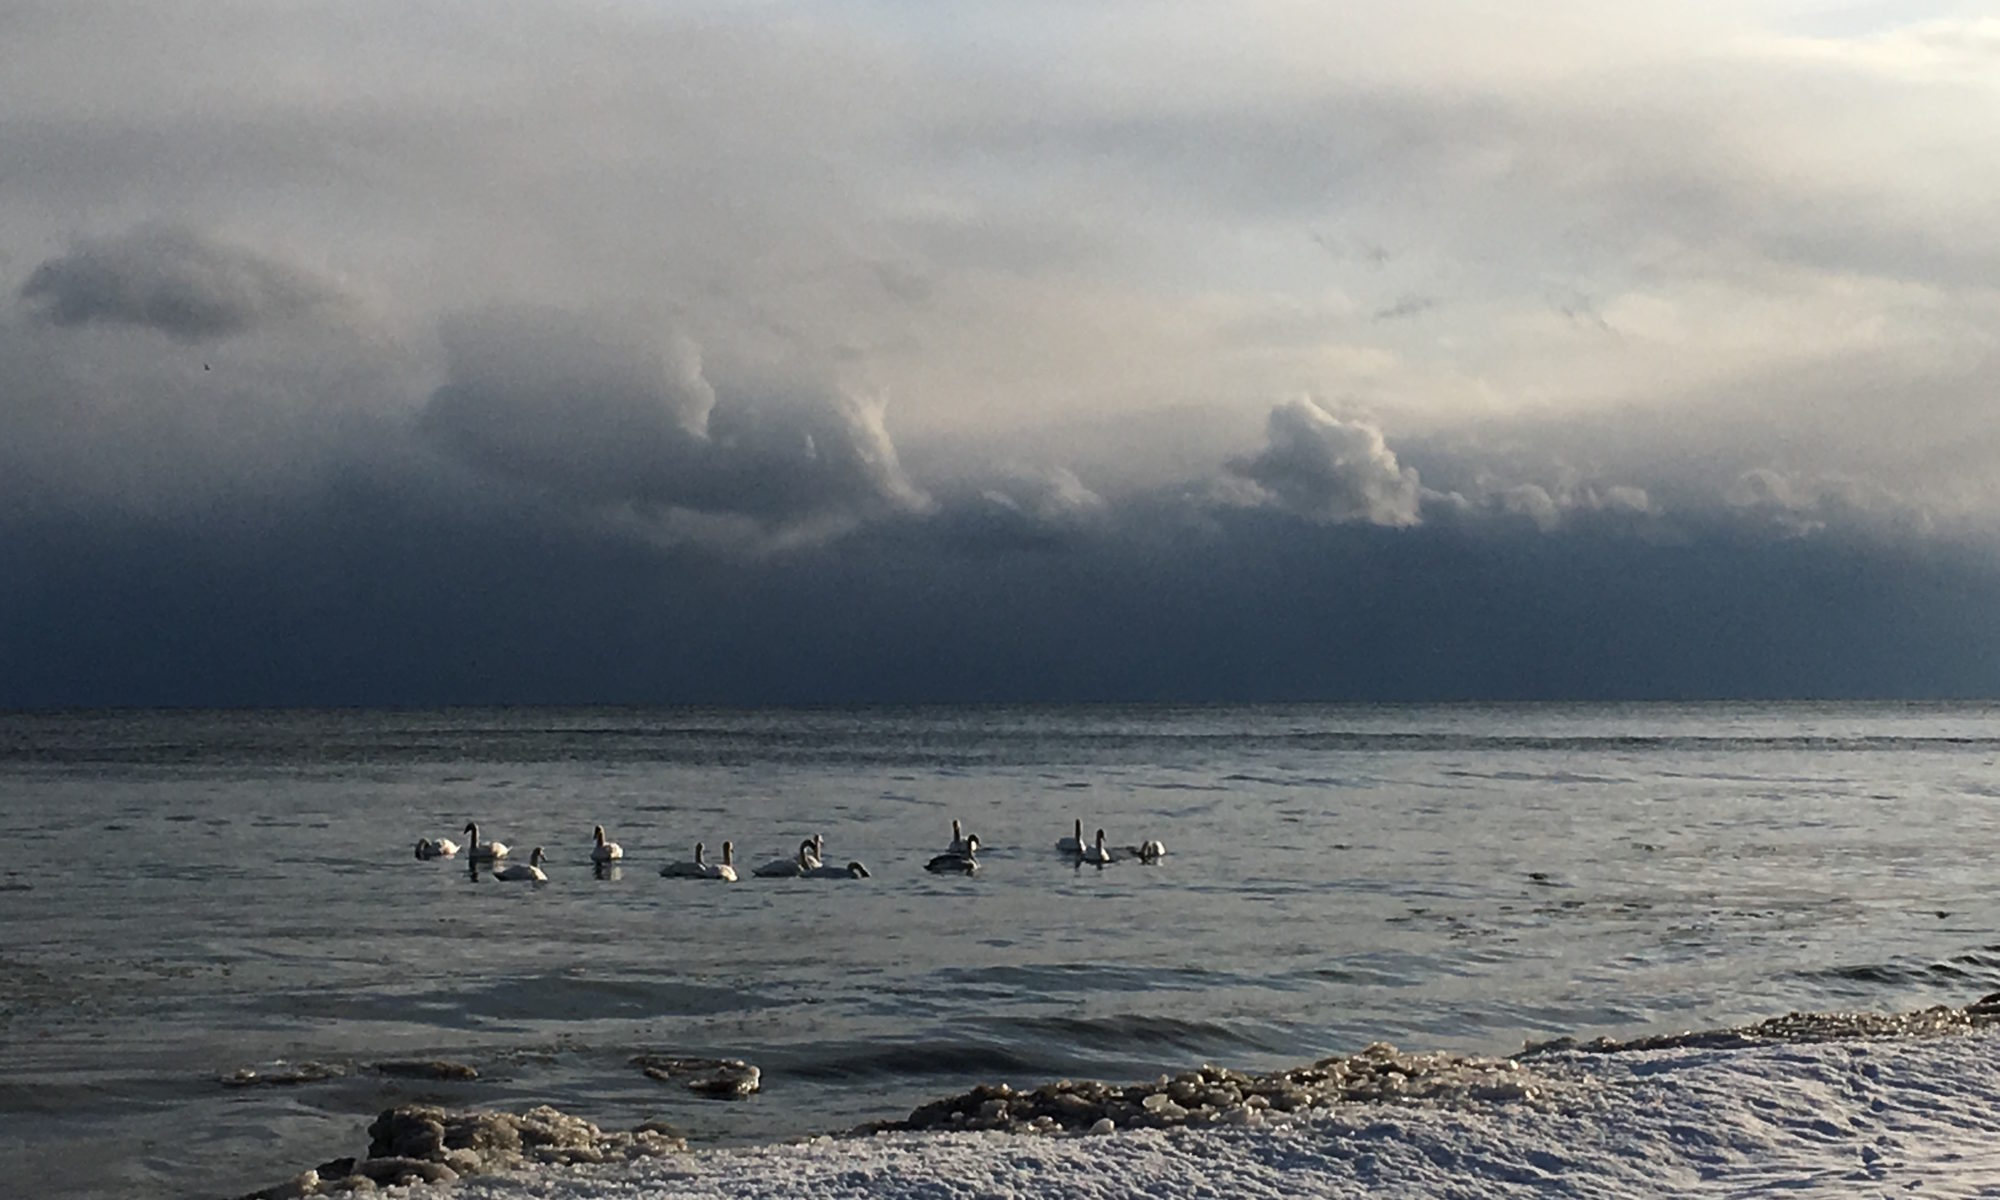 12 swans on Lake Ontario